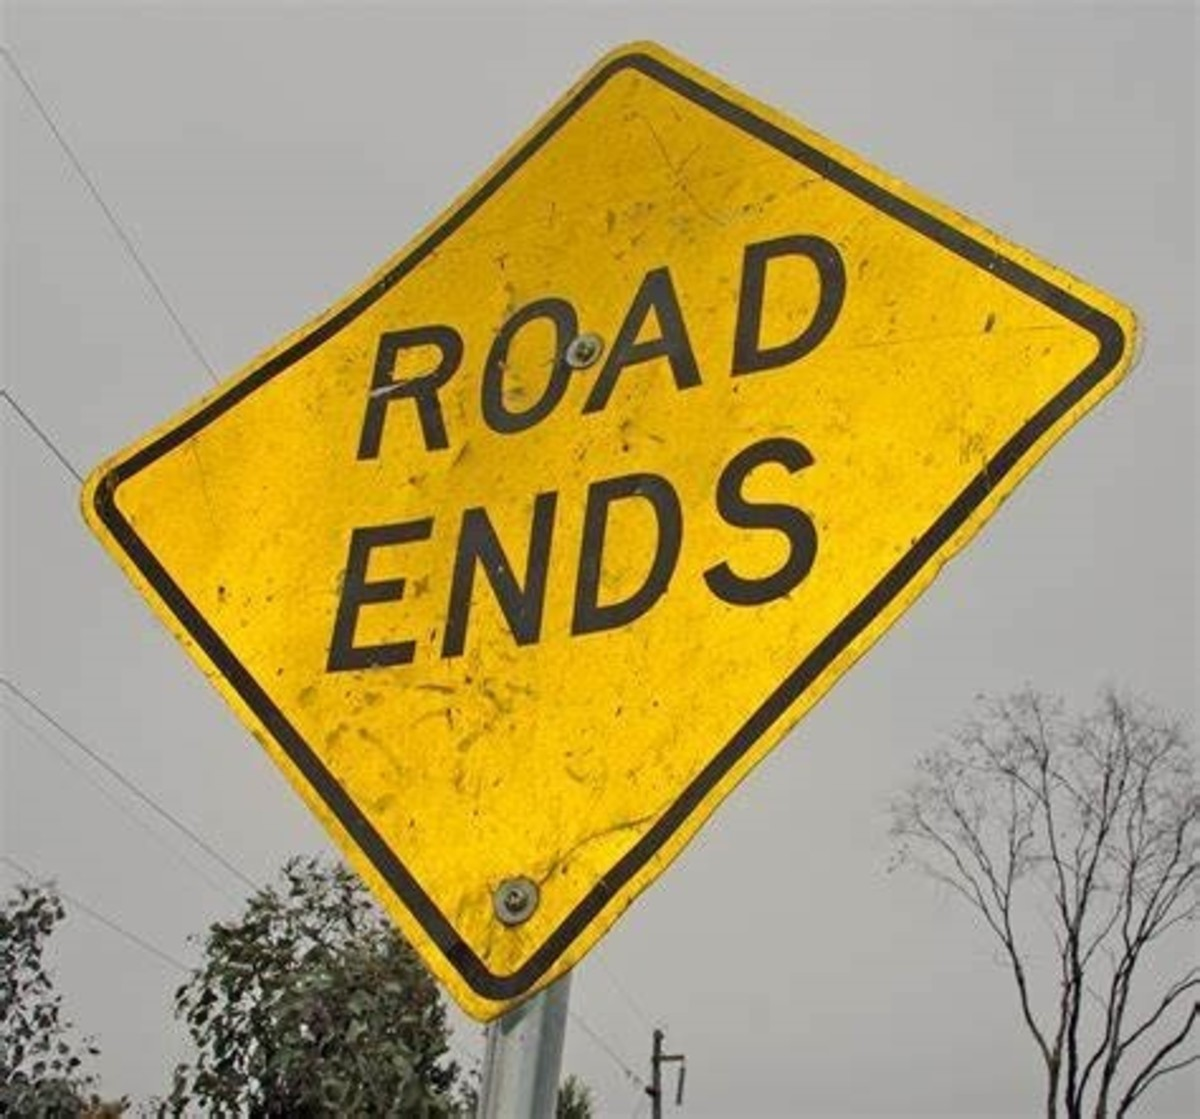 Road Ends sign.jpg - Wikimedia Commons